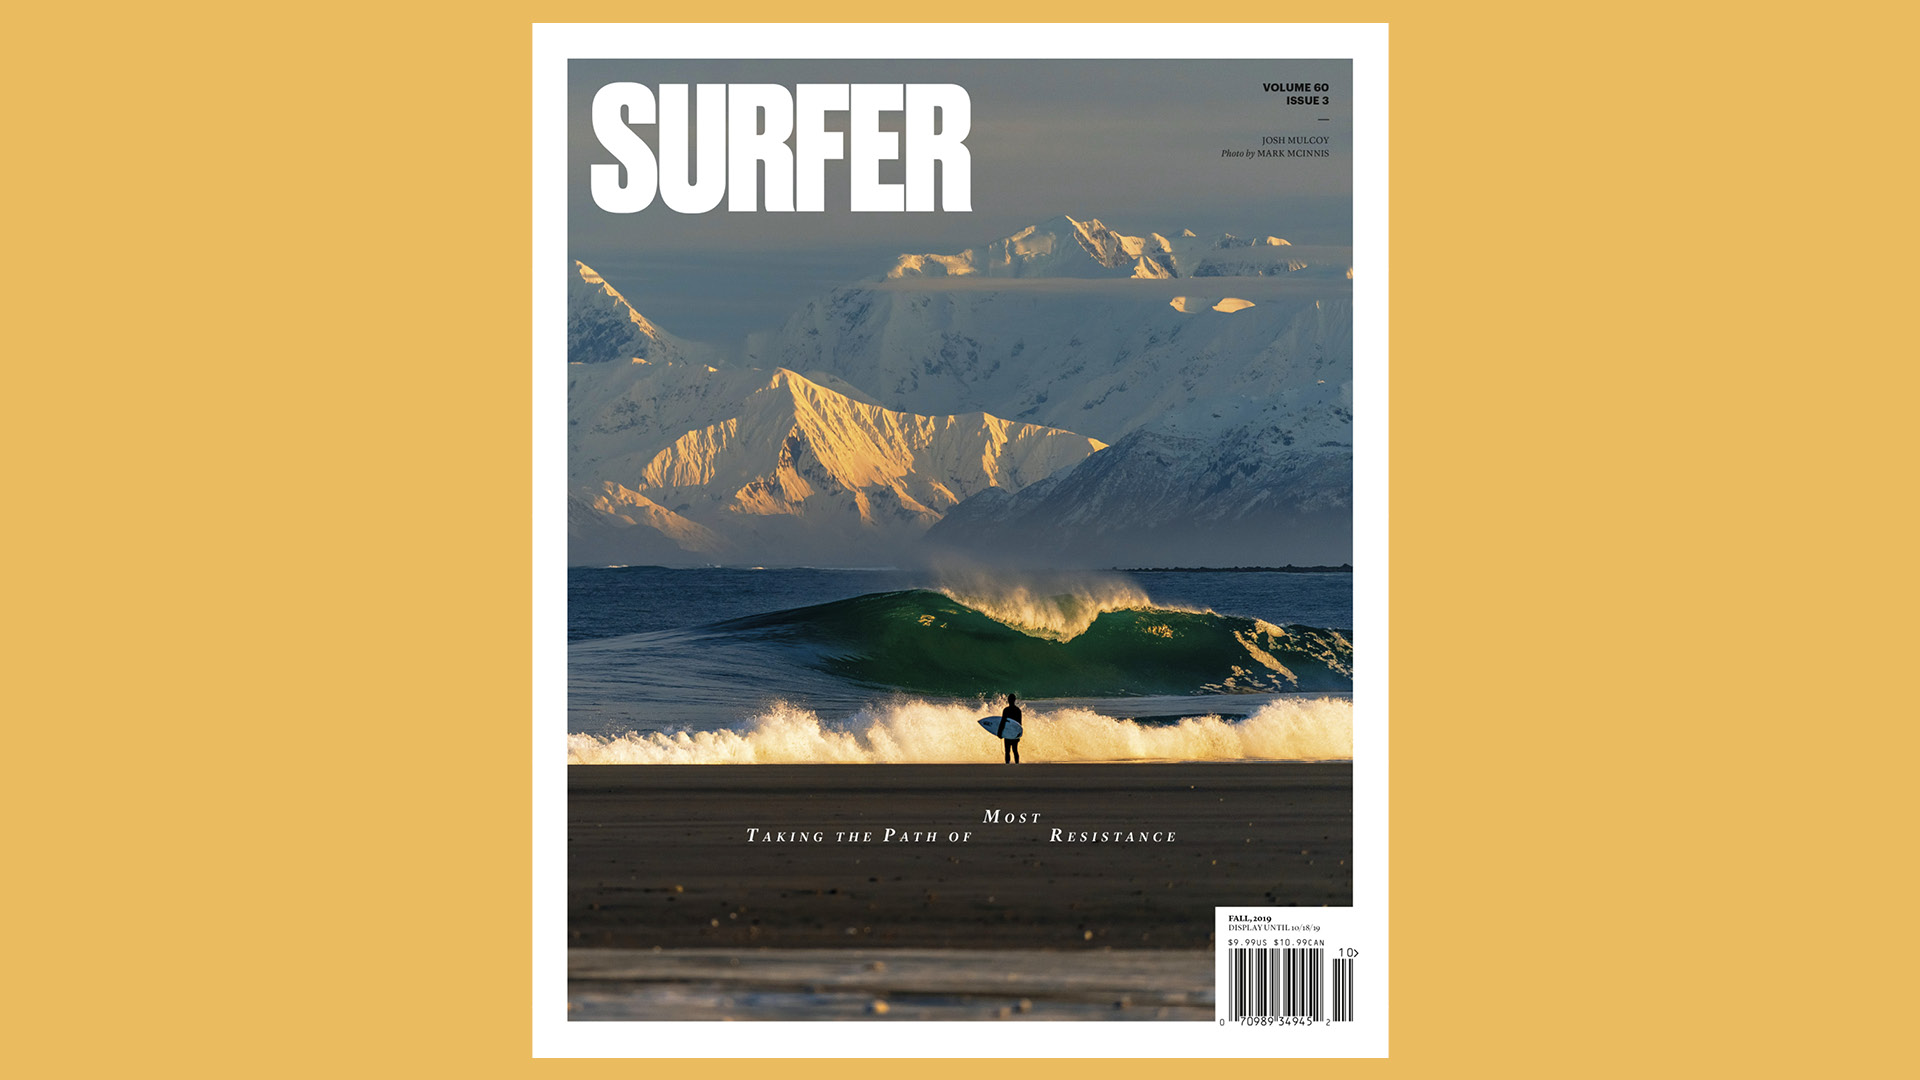 A Sneak Peek Inside SURFER's New Issue